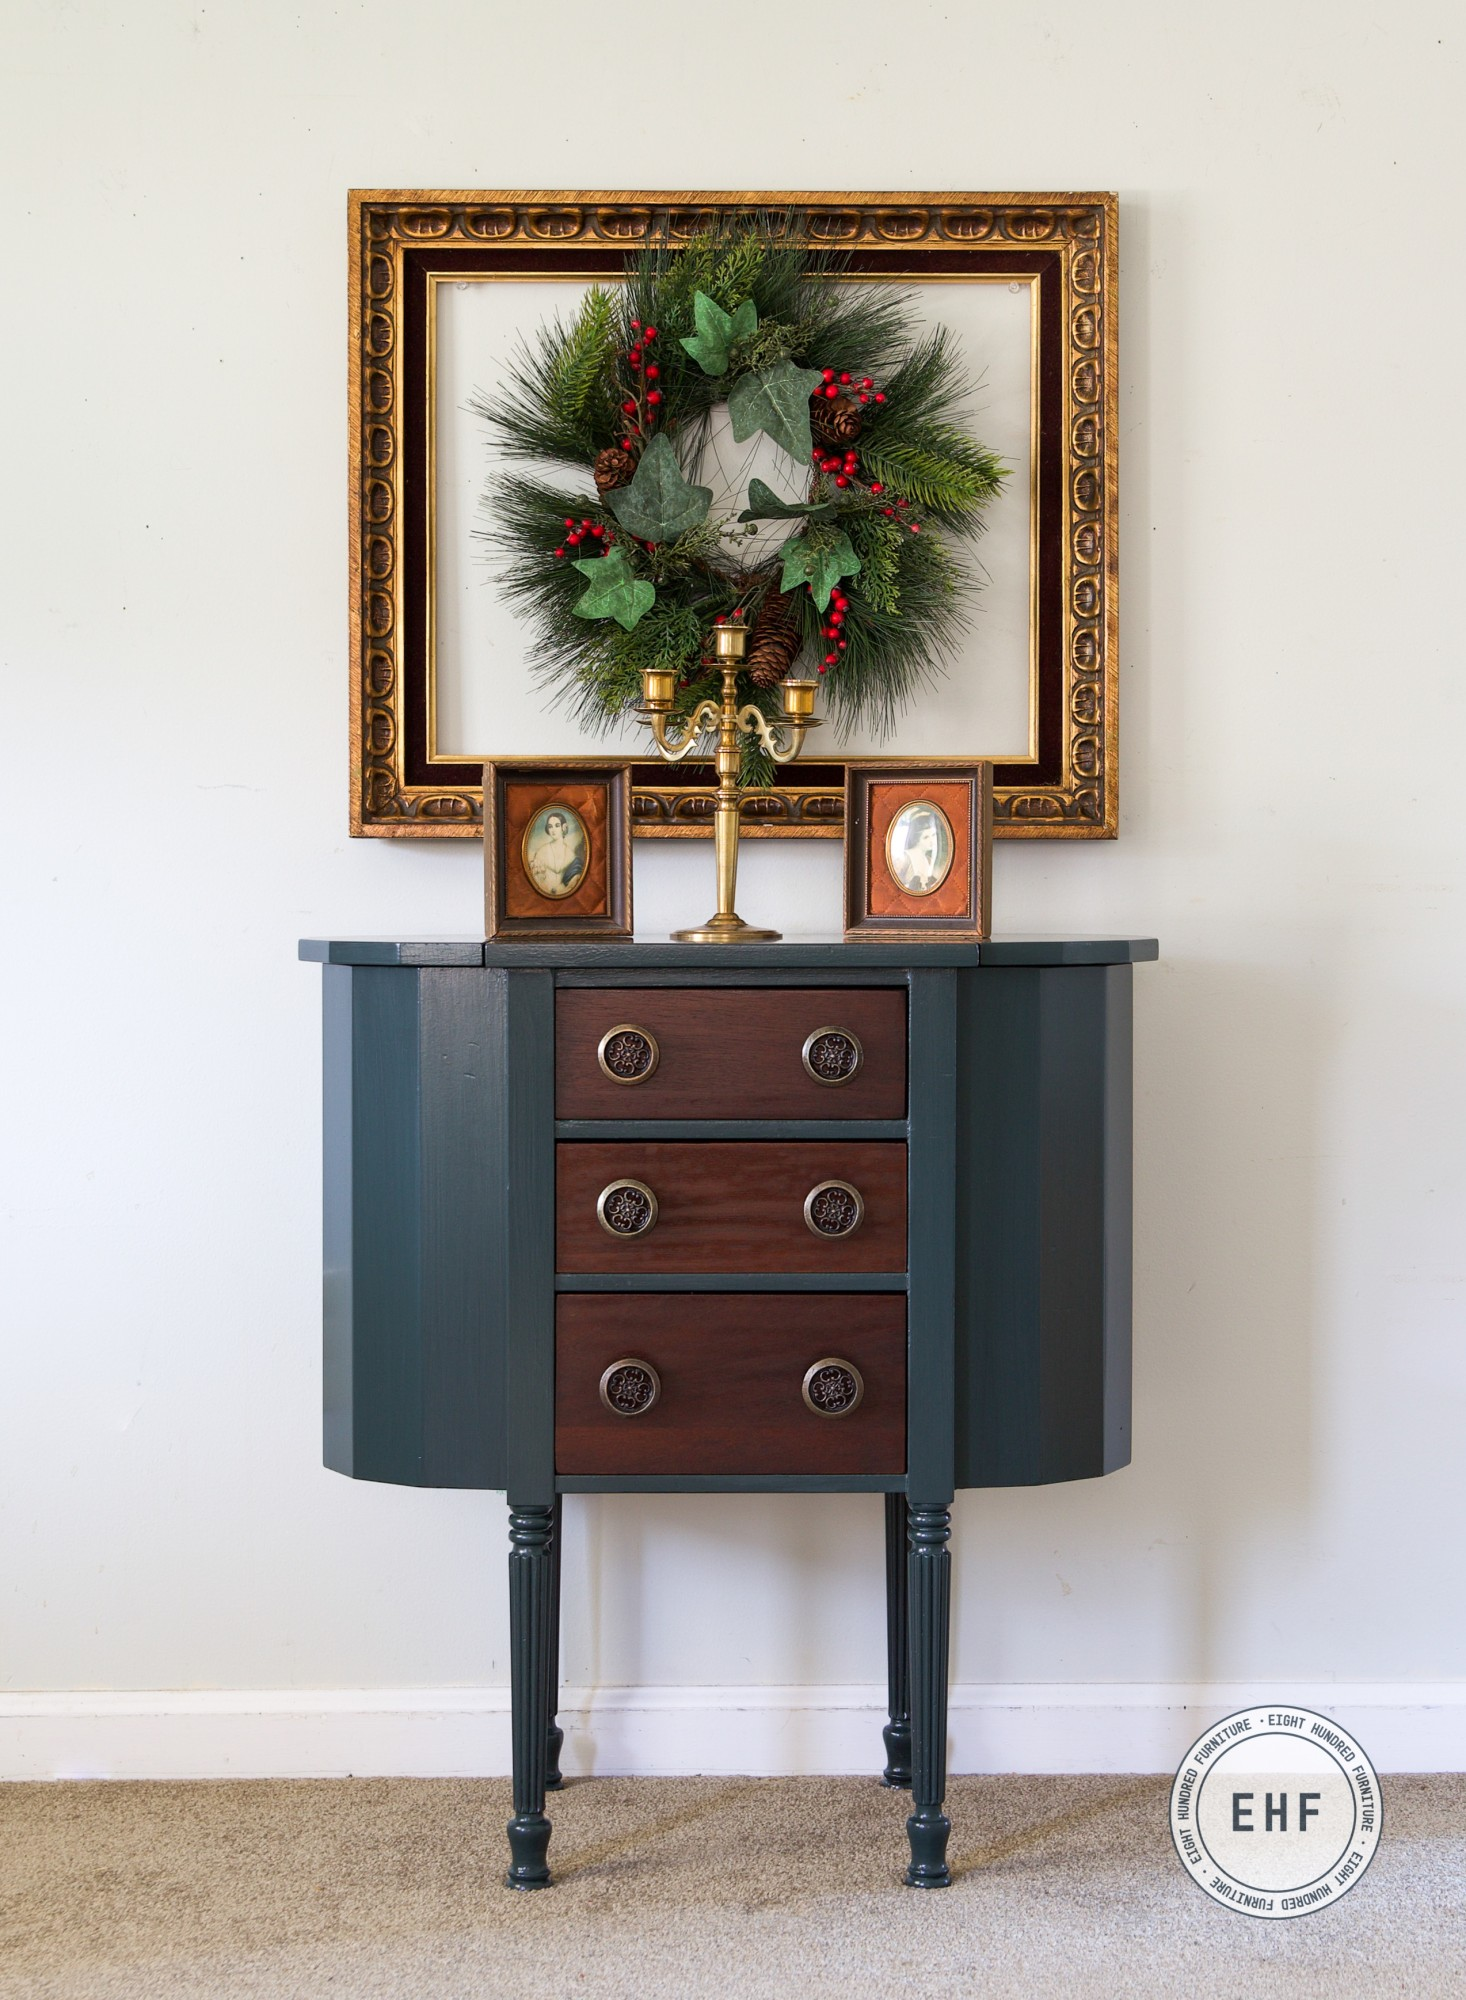 Martha Washington Sewing Table, General Finishes Milk Paint, Arm-R-Seal, Westminster Green, Emerald, Lamp Black, Eight Hundred Furniture